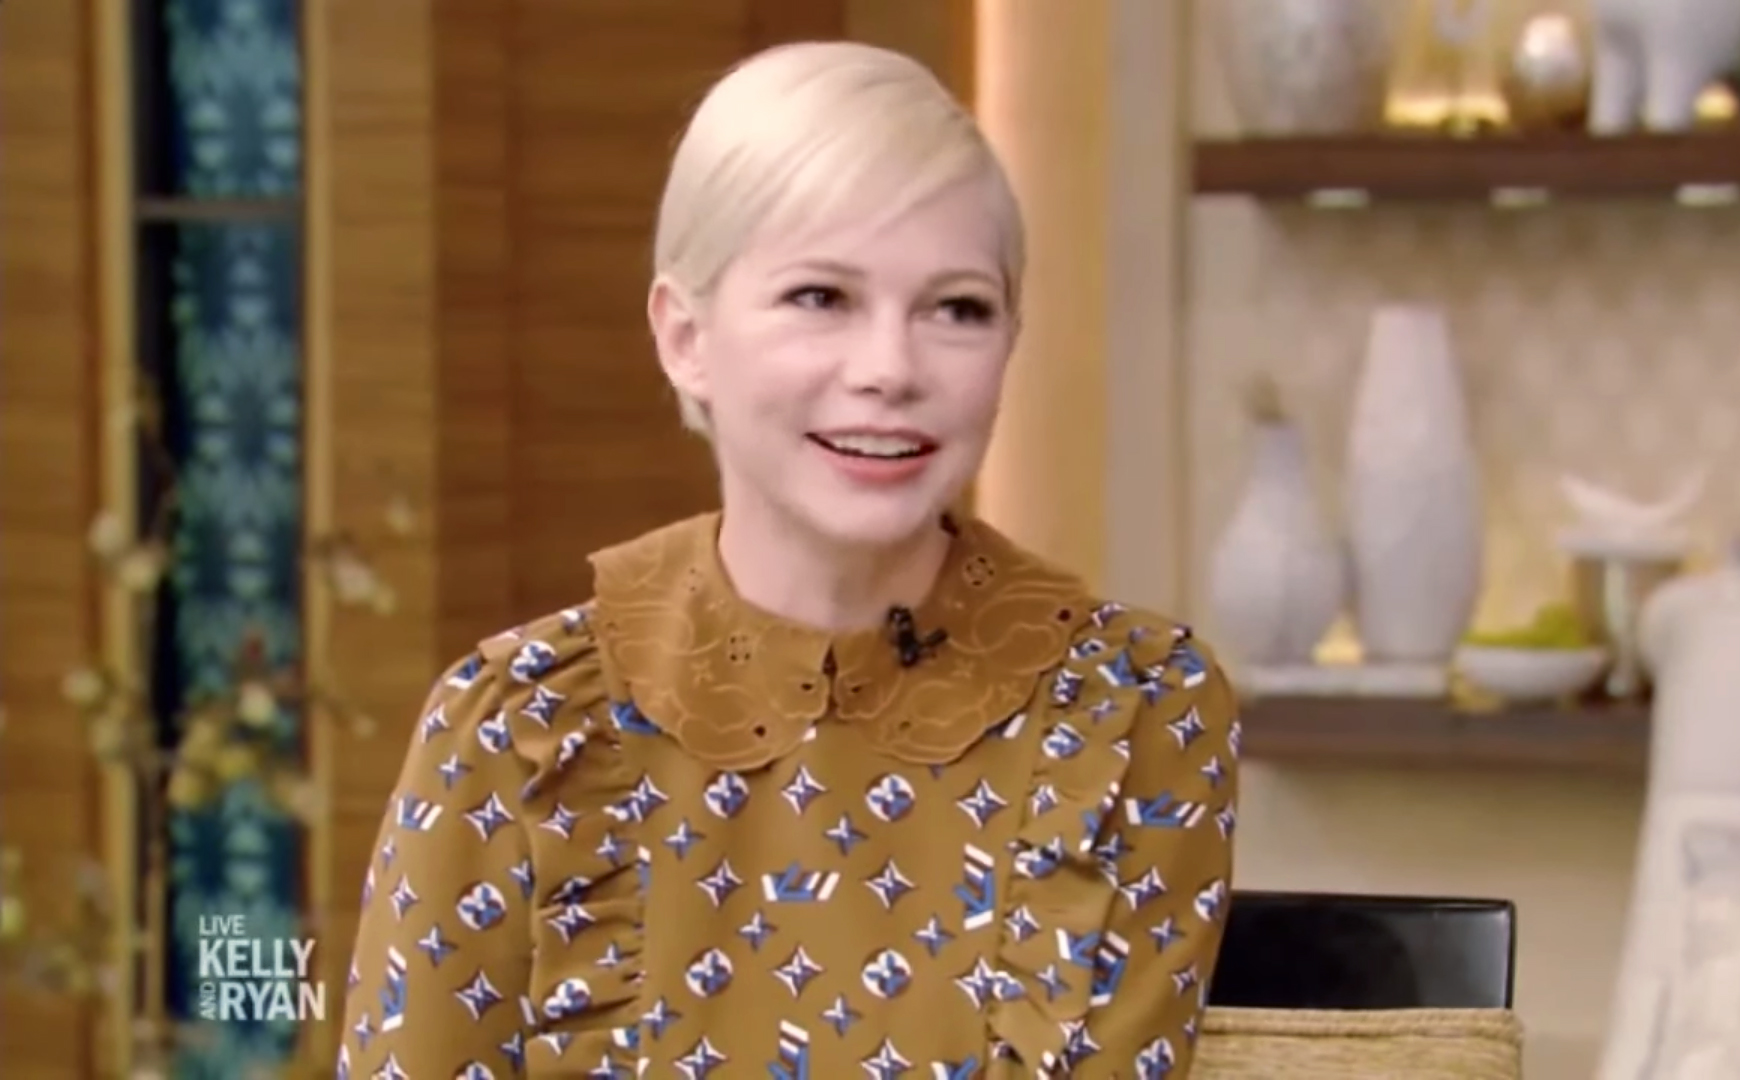 Michelle Williams Shares Update on Daughter Matilda on Heath Ledger's 40th Birthday - Michelle Williams on Live with Kelly and Ryan.